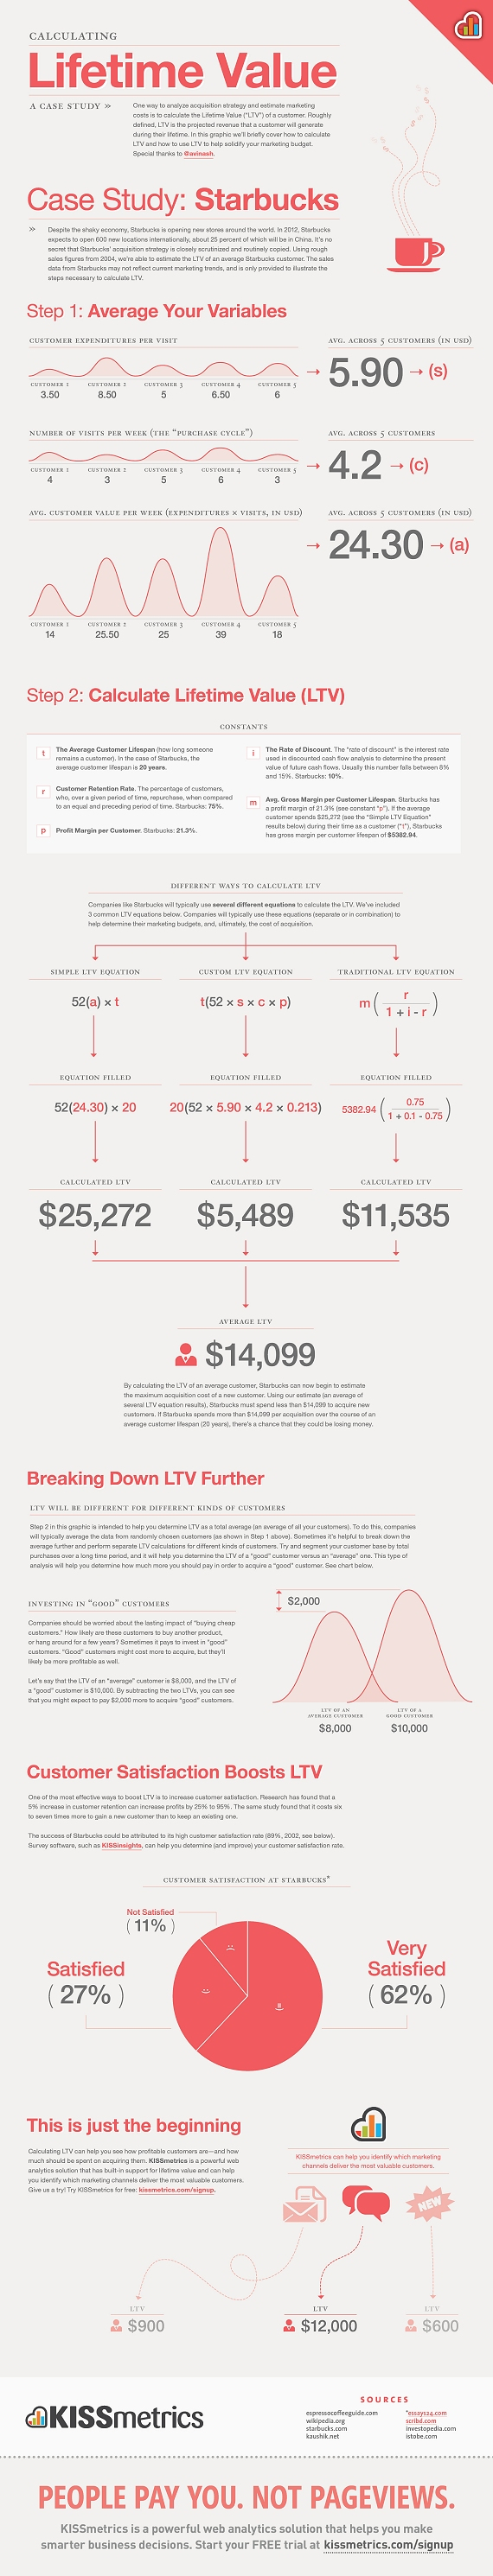 How to Calculate Lifetime Value